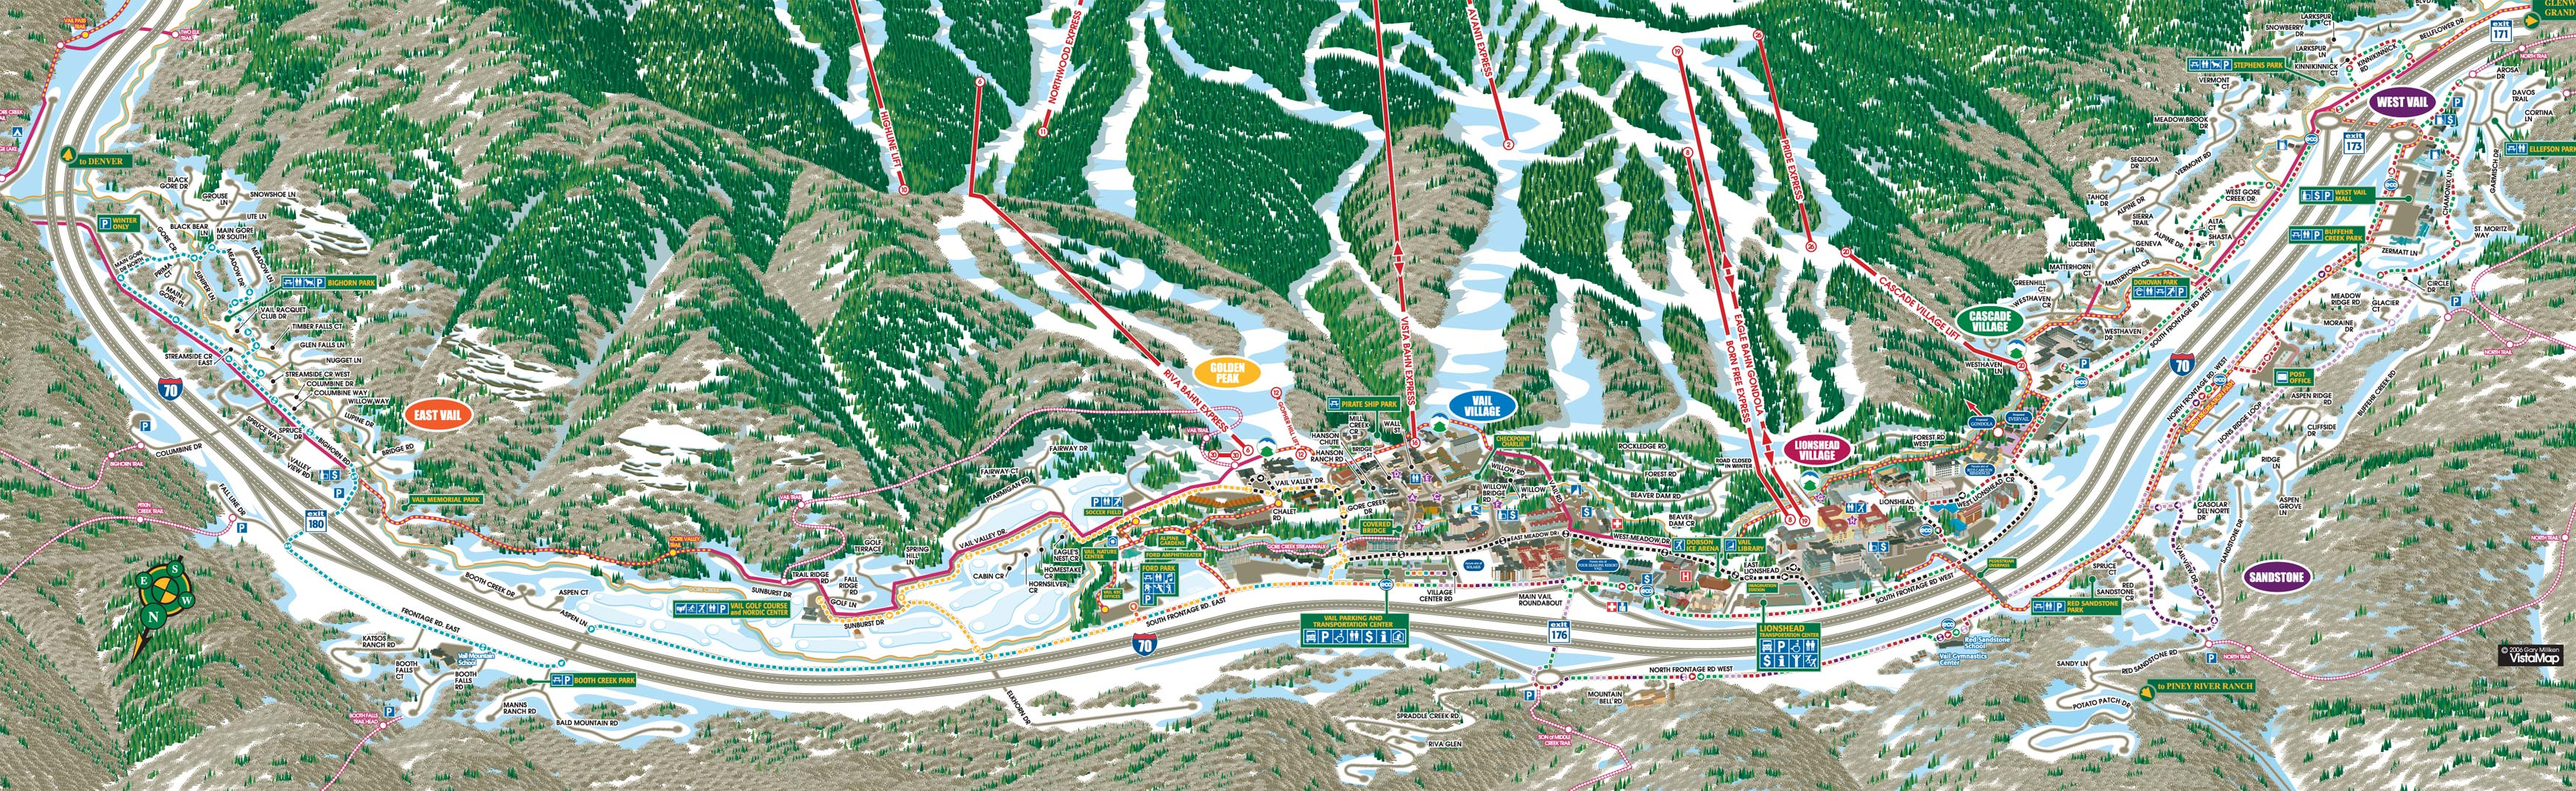 vail town map (   mb). vail piste maps and ski resort map  powderbeds